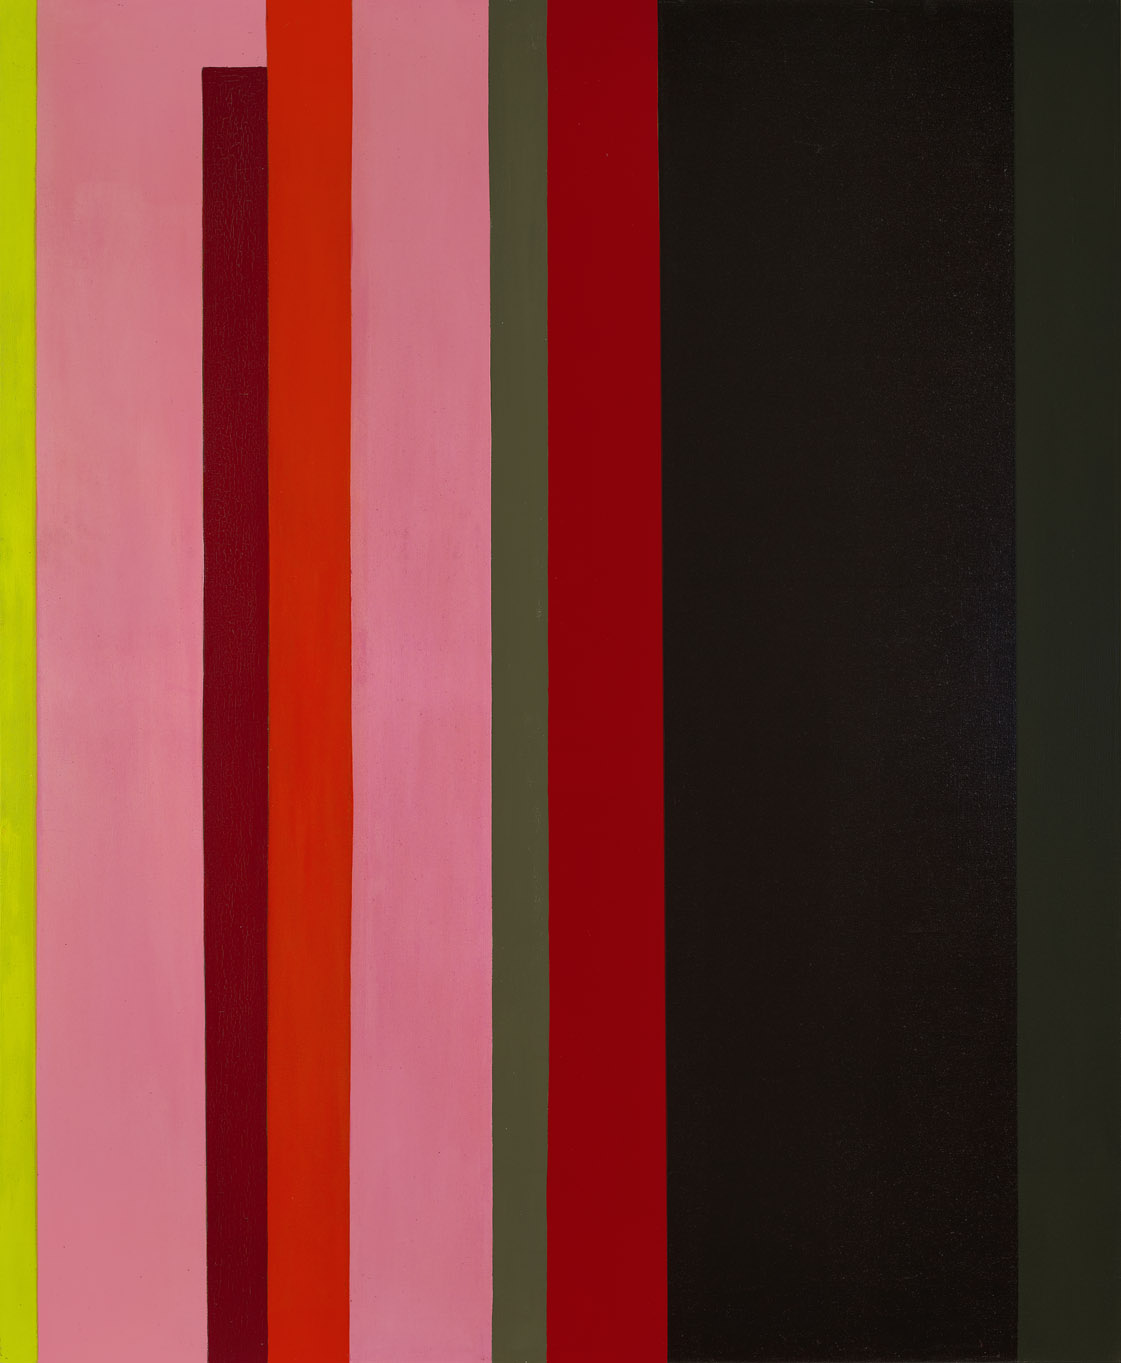 Magical Space Forms: Stripes , 1954  oil on canvas 60 x 50 inches; 152.4 x 127 centimeters